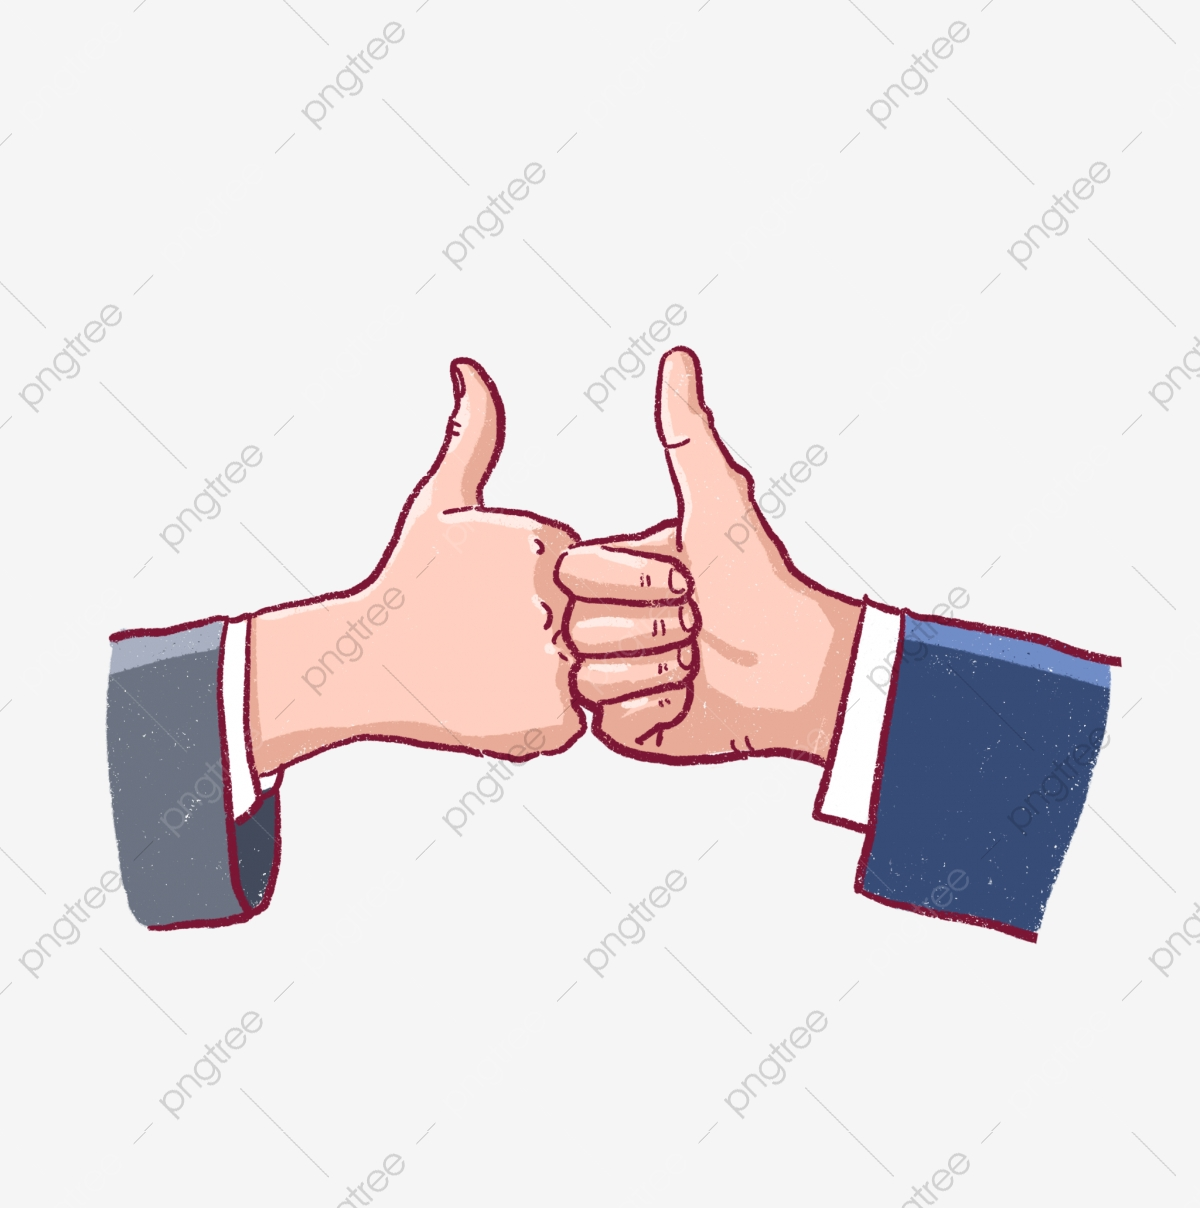 hand painted cartoon thumb png free material like thumb hands like png transparent clipart image and psd file for free download https pngtree com freepng hand painted cartoon thumb png free material 4425057 html